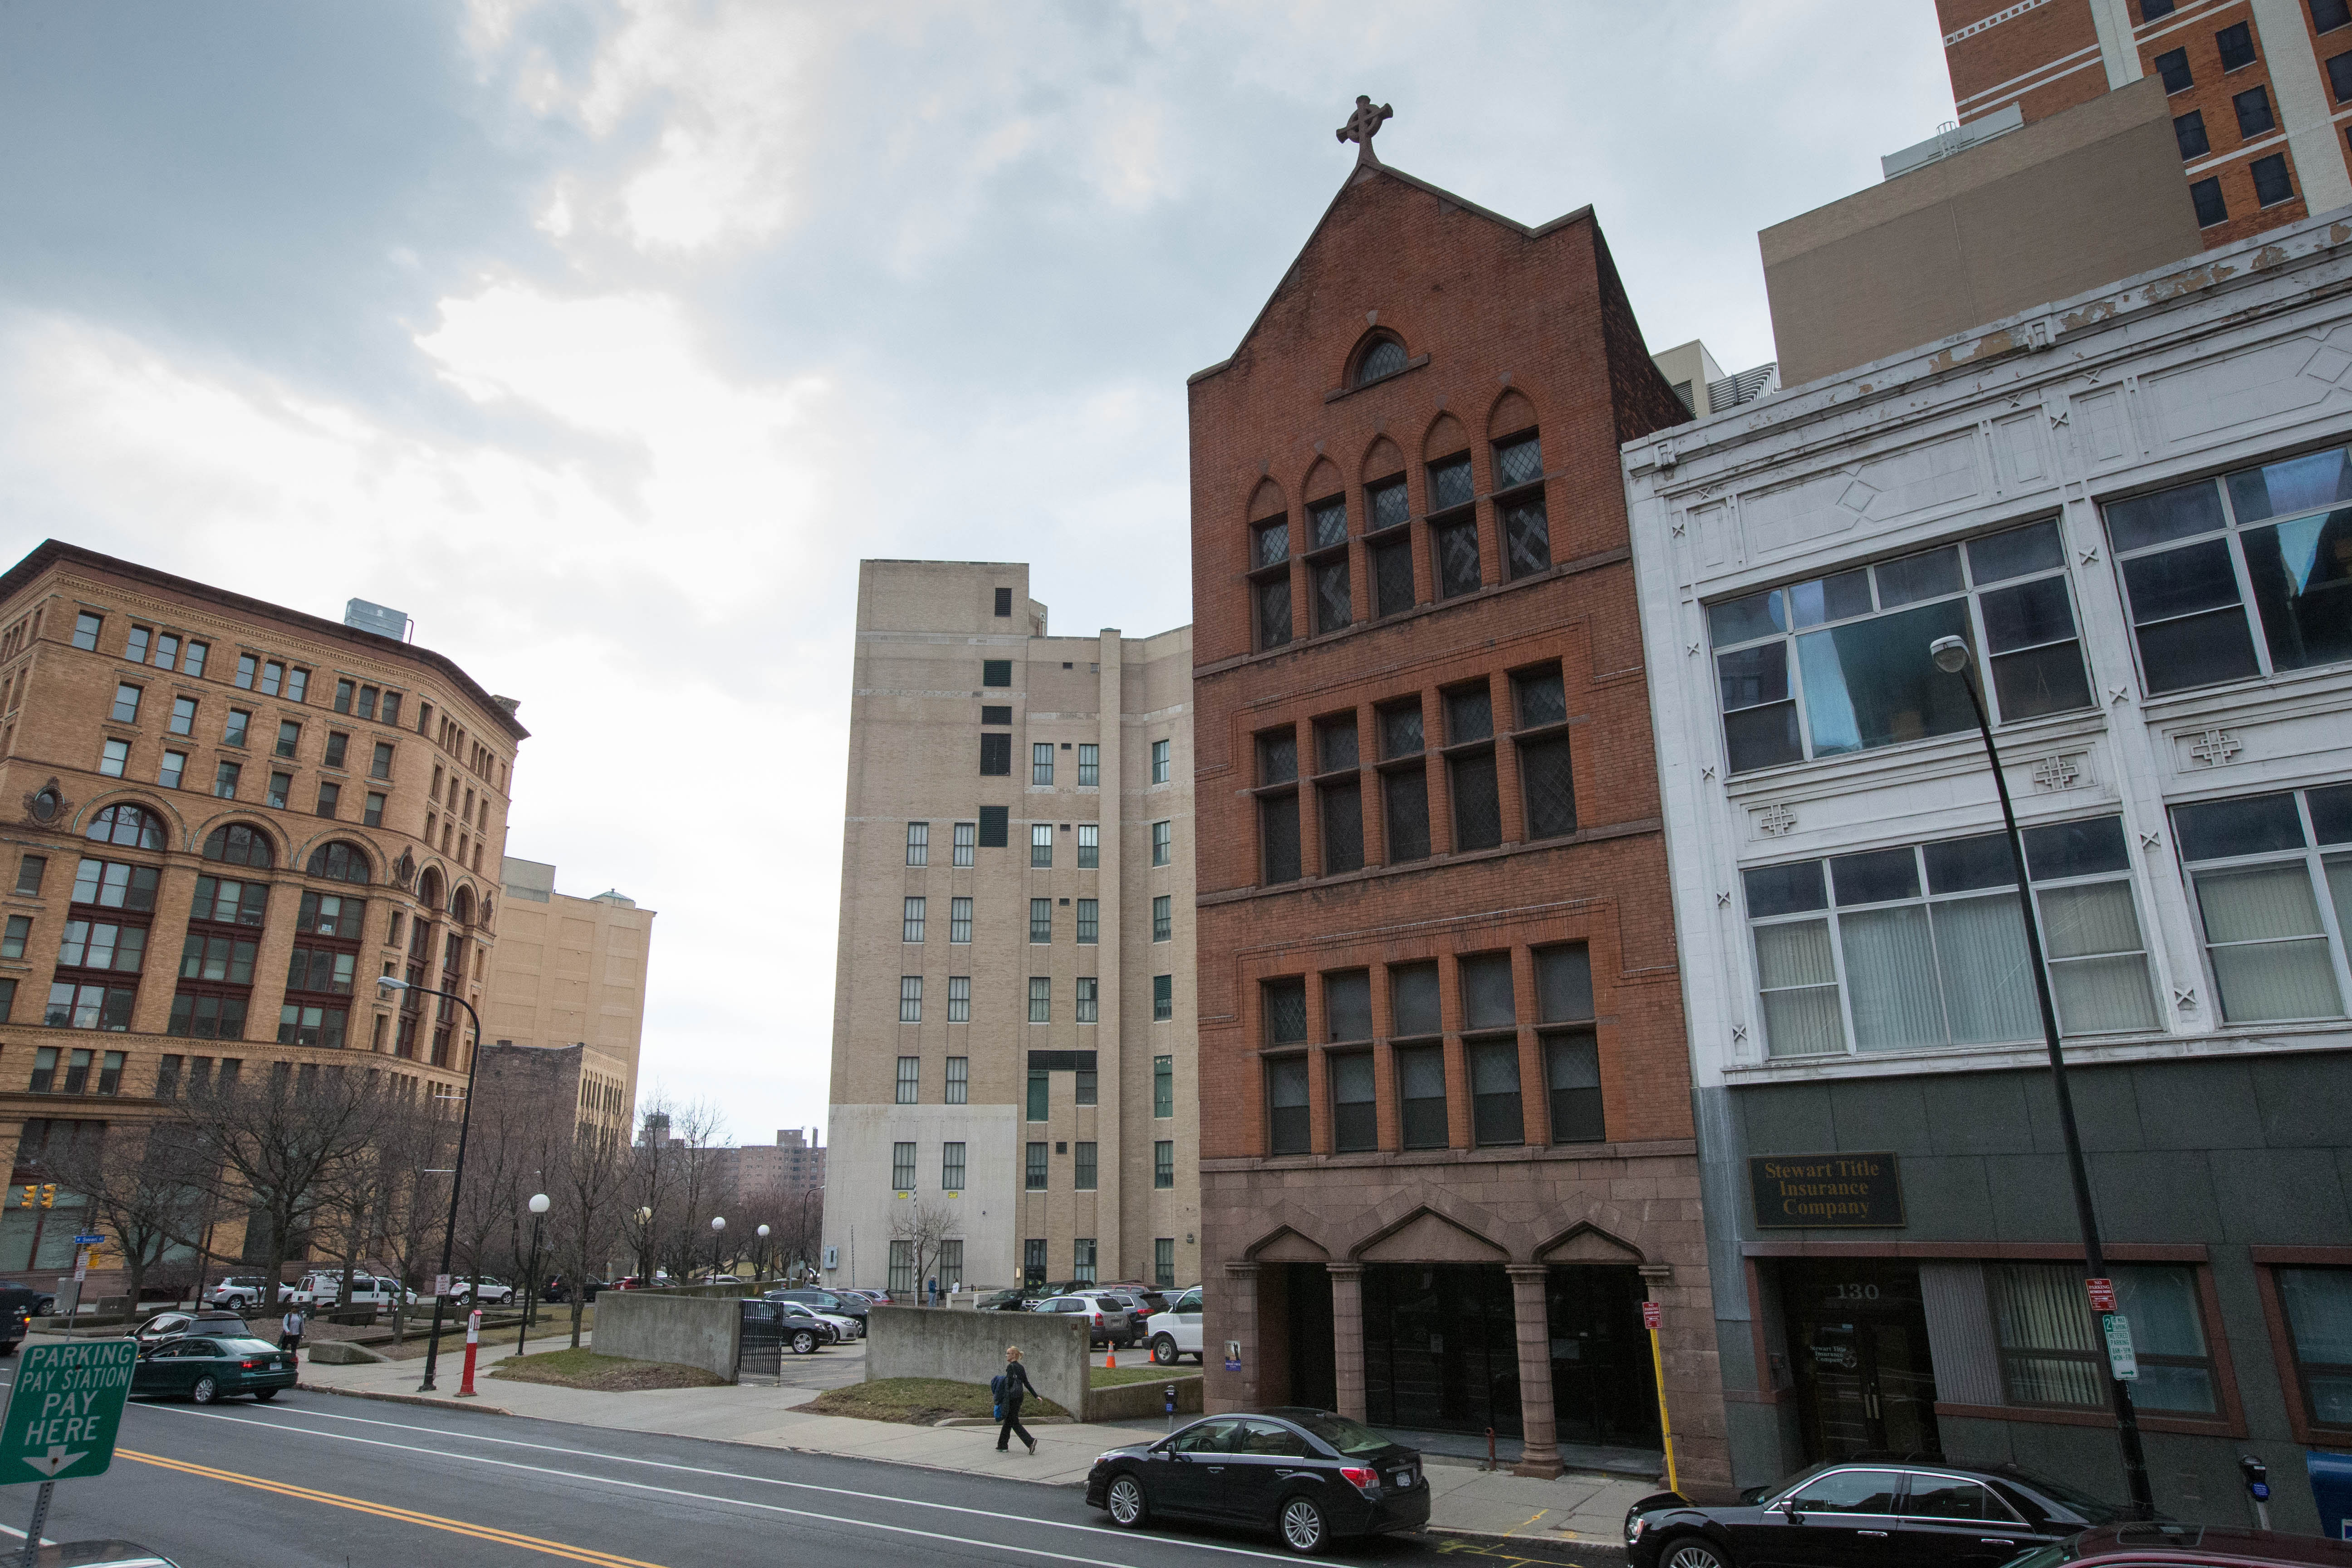 The Erie County Industrial Development Agency approved $79,000 in tax breaks for a $1.8 million project to convert 128 Pearl St., which historically has served as offices and educational space for St. Paul's Cathedral, into seven apartments. (Derek Gee/Buffalo News file photo)